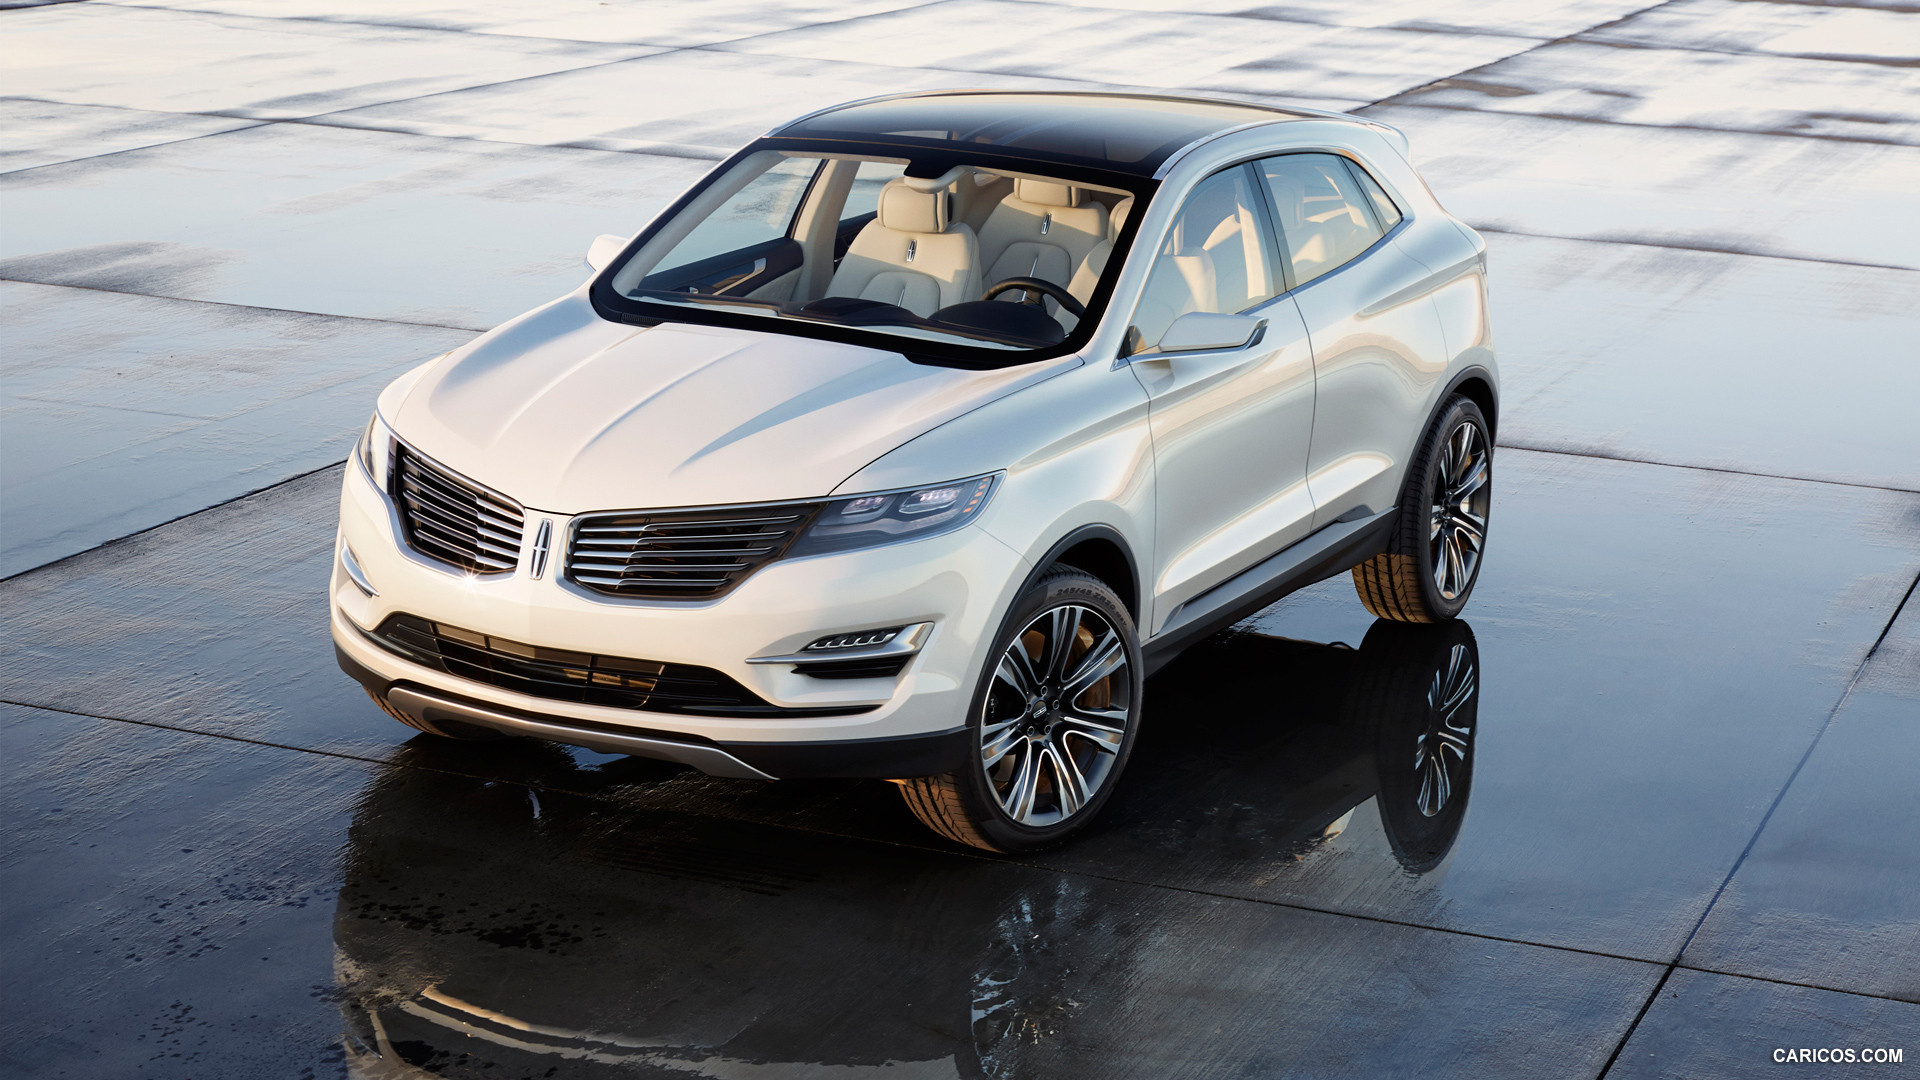 2014 Lincoln Mkc Concept Backgrounds, Compatible - PC, Mobile, Gadgets| 1920x1080 px